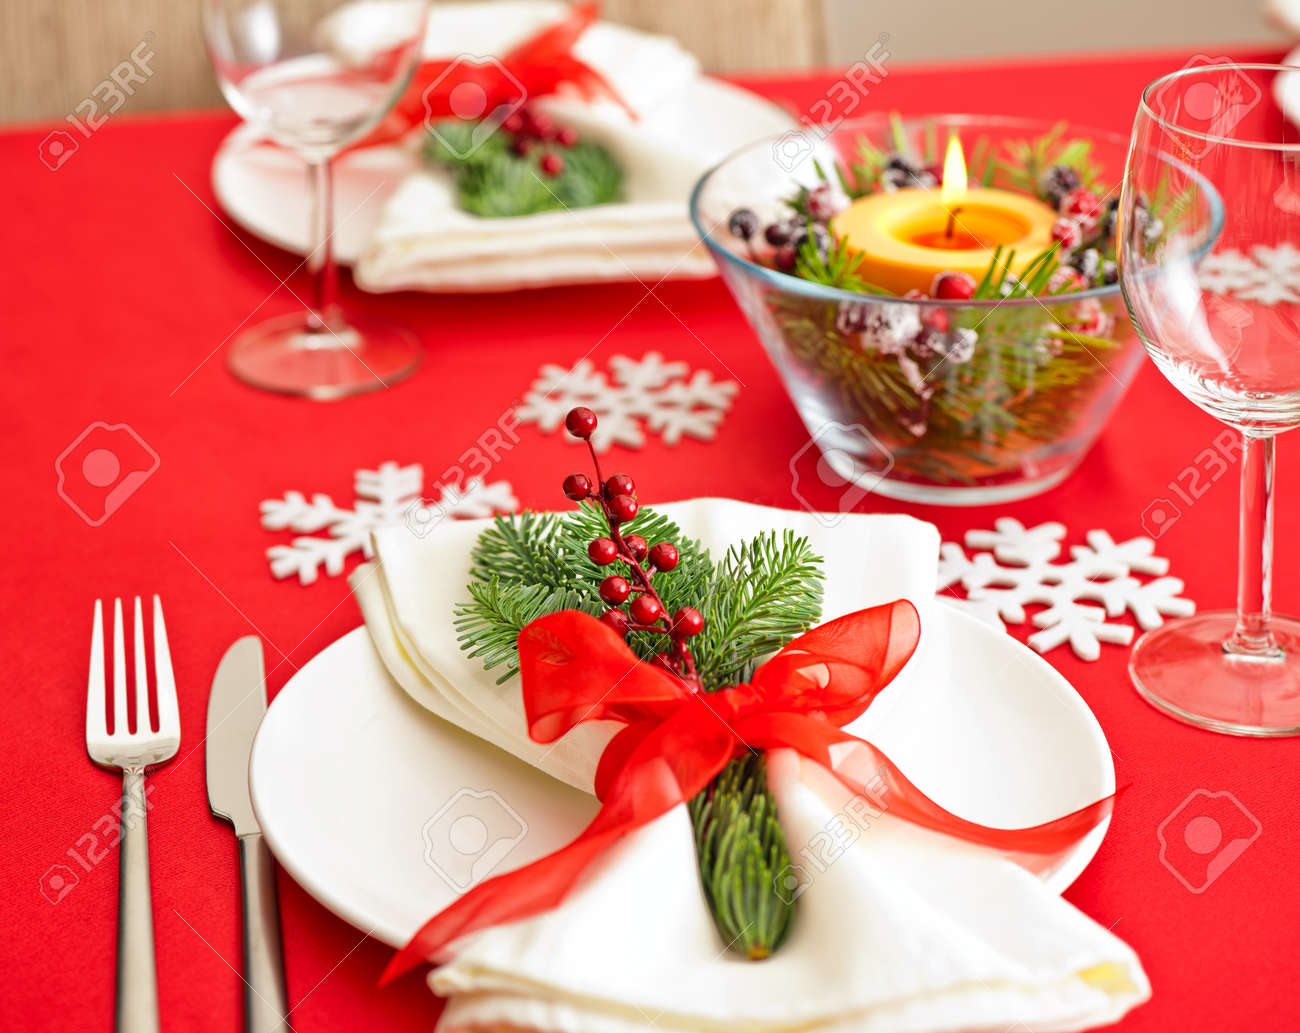 Red Christmas dinner table setup with snow flake decoration Stock Photo - 26936595 & Red Christmas Dinner Table Setup With Snow Flake Decoration Stock ...